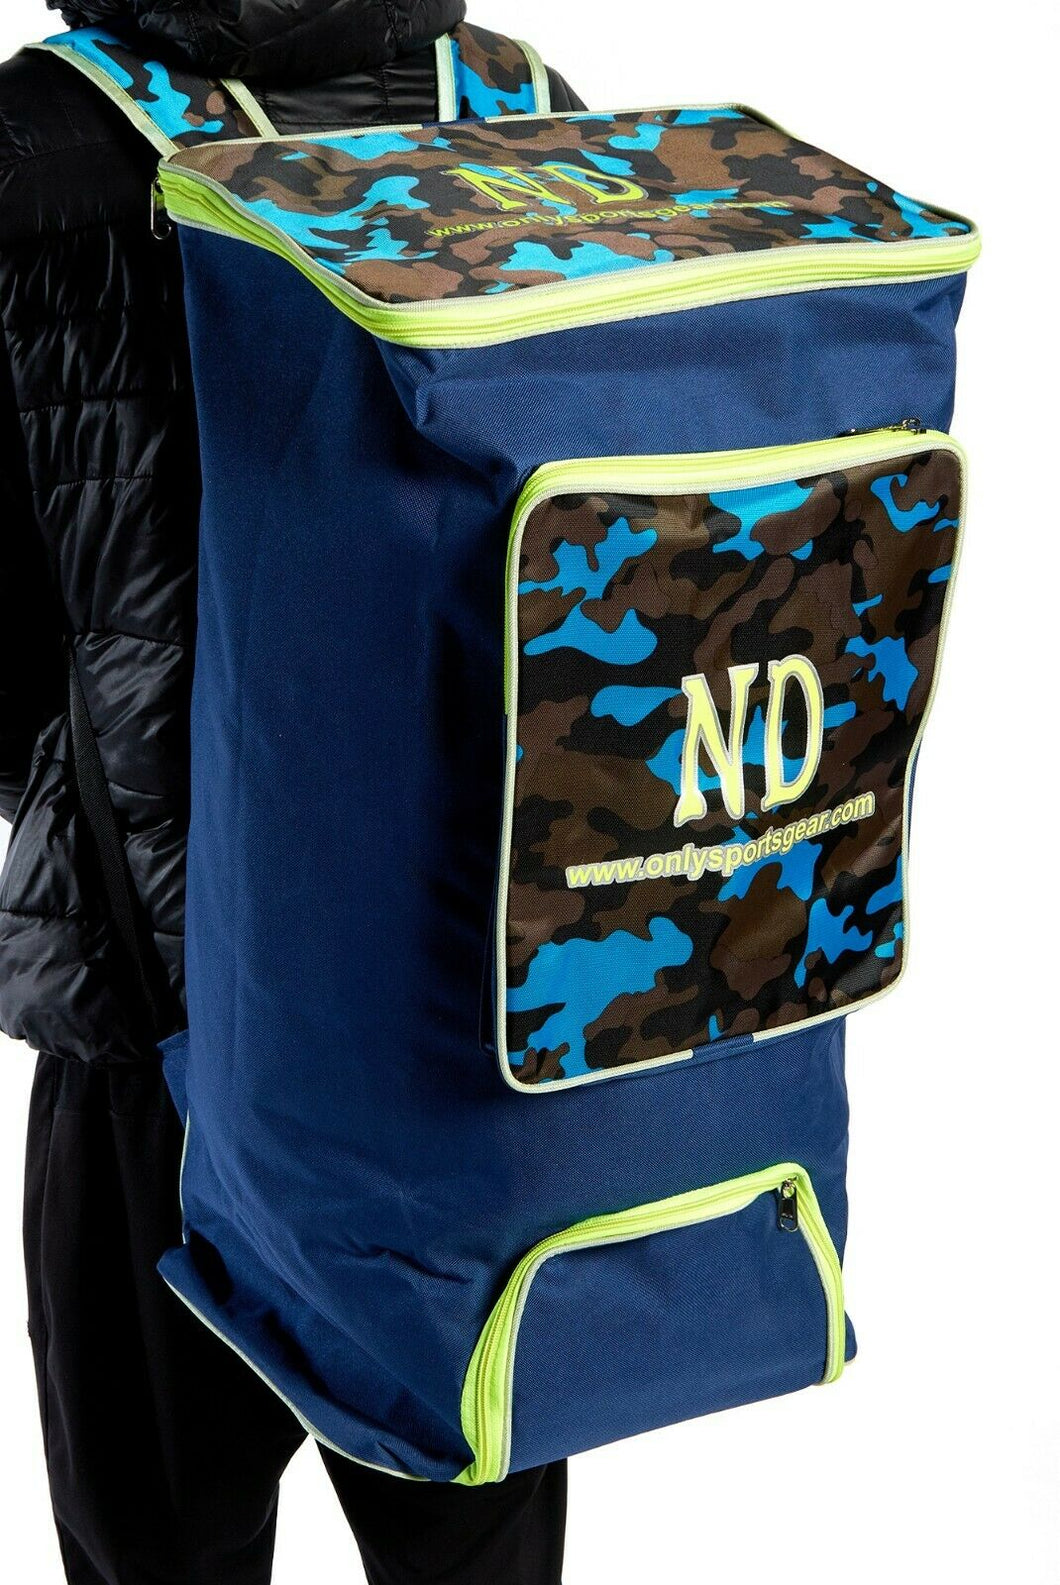 ND Plus Camouflage Powerbow Large Duffle Kit Cricket Bag 70 x 30 x 35 cm